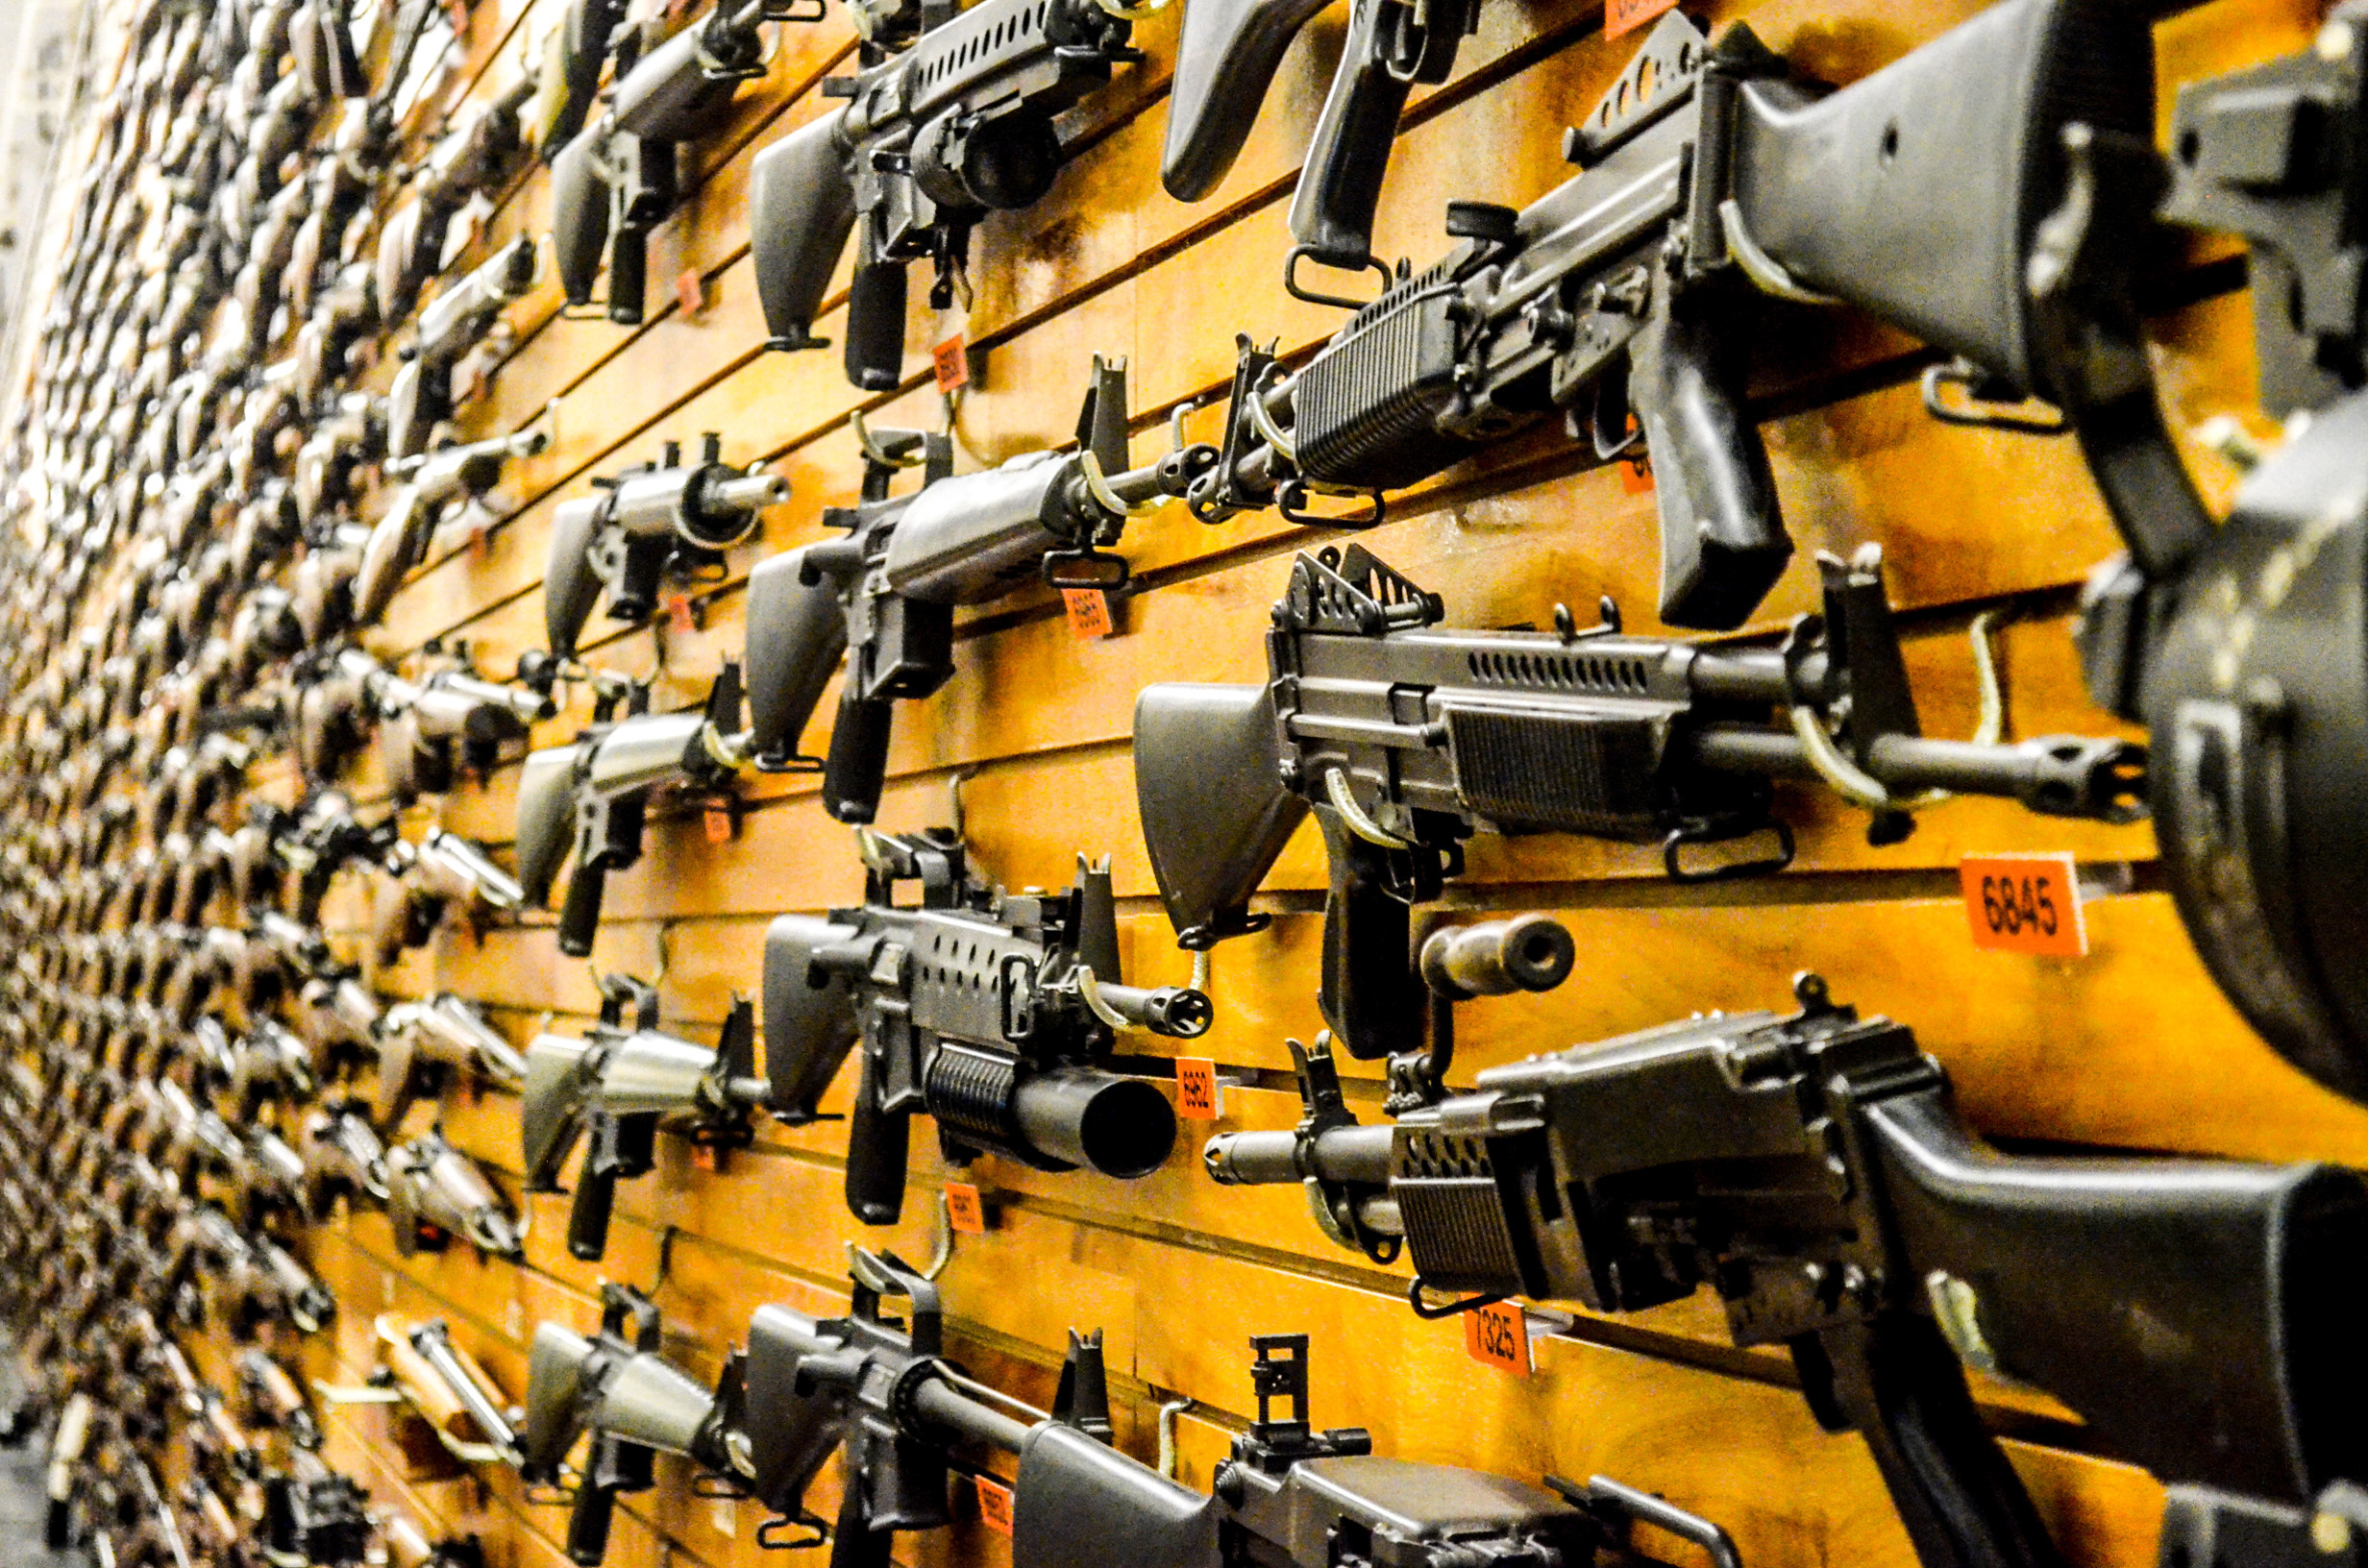 Could AI detect mass shooters before they strike? - Big Think